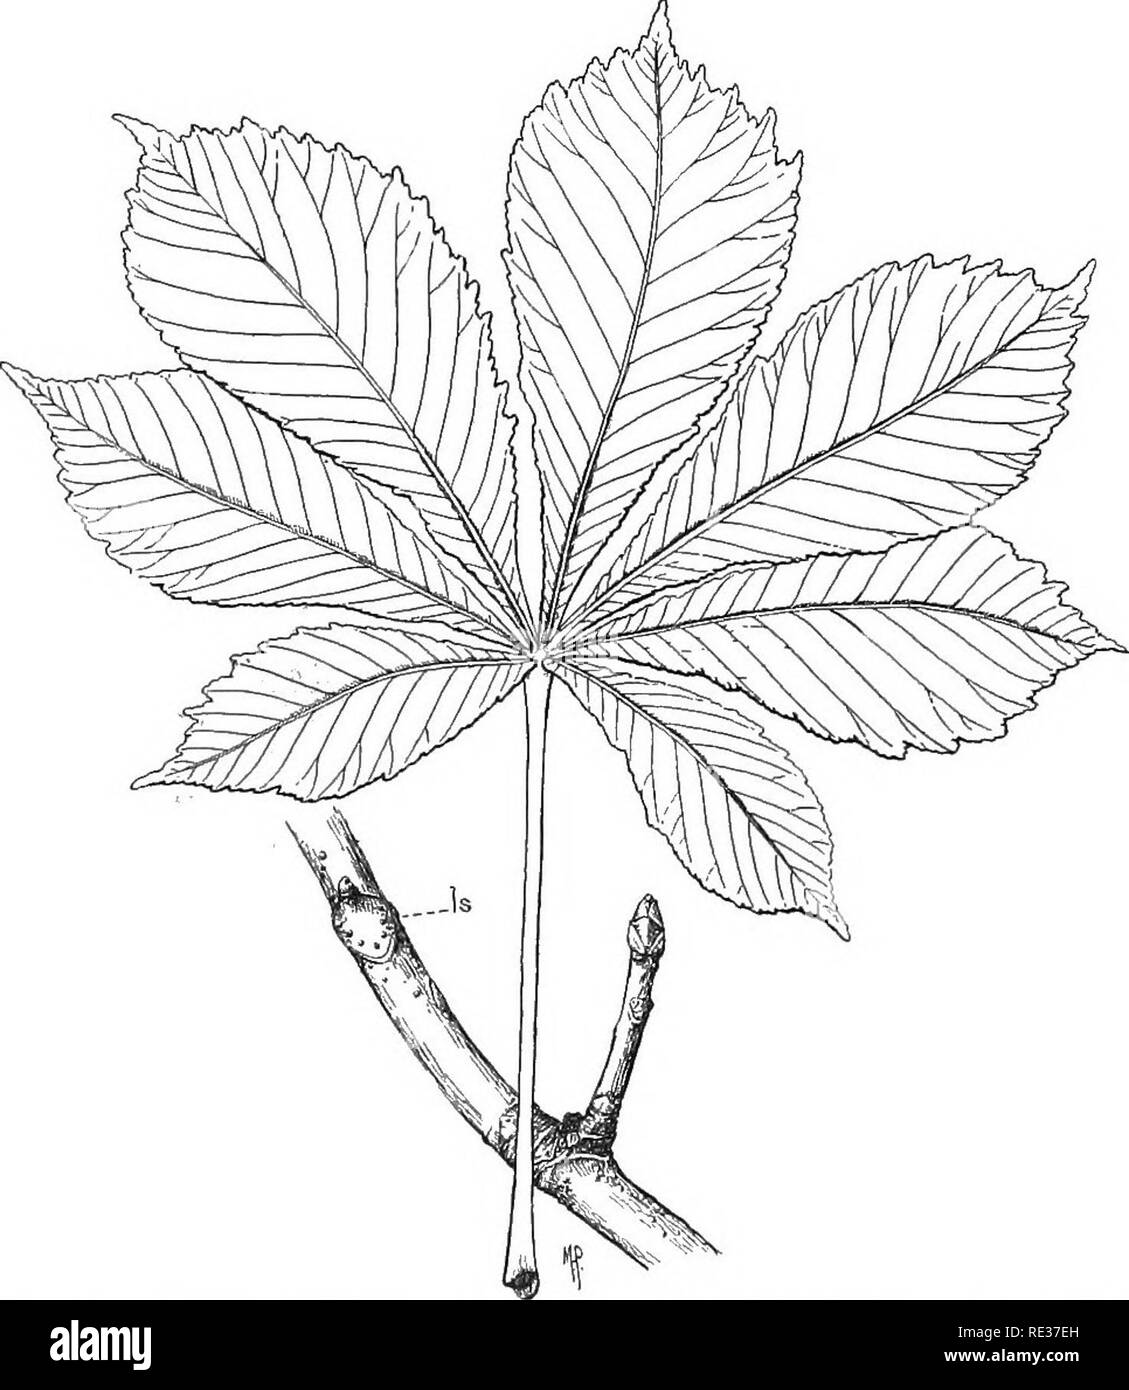 . Fundamentals of botany. Botany. 36 THE VEGETATIVE FUNCTIONS OF PLANTS converge at the base of the blade (Fig. 22). They may be traced from this point, through the petiole, into the branch. The veins are composed of fibers and vessels,. Fig. 28.—Horse-chestnut {Aesculus Hippocastanum). Is, leaf-scar, showing scars of seven fibro-vascular bundles, corresponding, in number, to the seven leaflets of the compound leaf, formerly attached at Is. The leaf is drawn to a smaller scale than the branch. closely associated, and are, therefore, calltA fihro-vascular bundles. A cross-section of the petiole - Stock Image